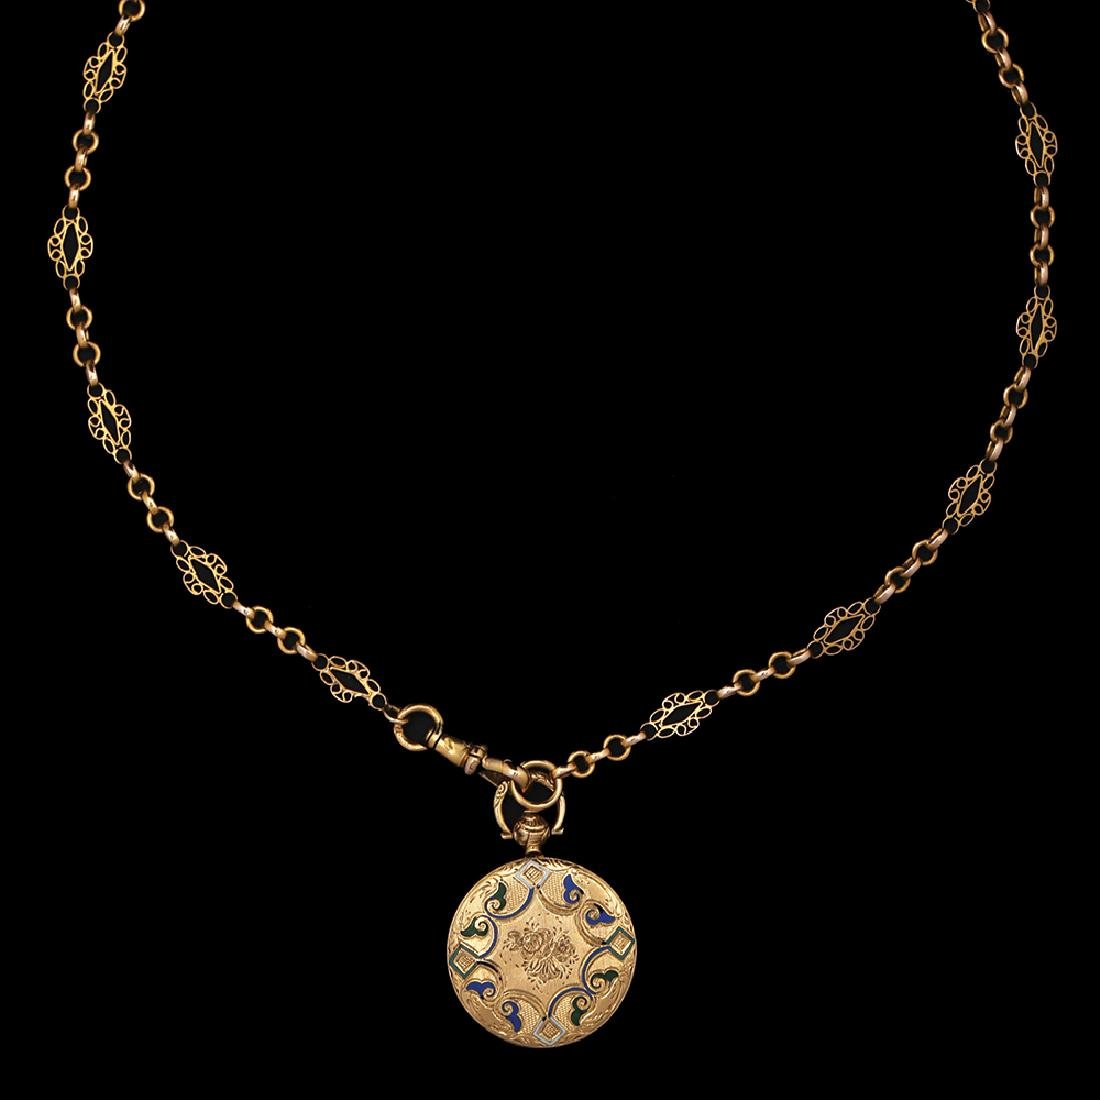 AN 18K GOLD PENDANT